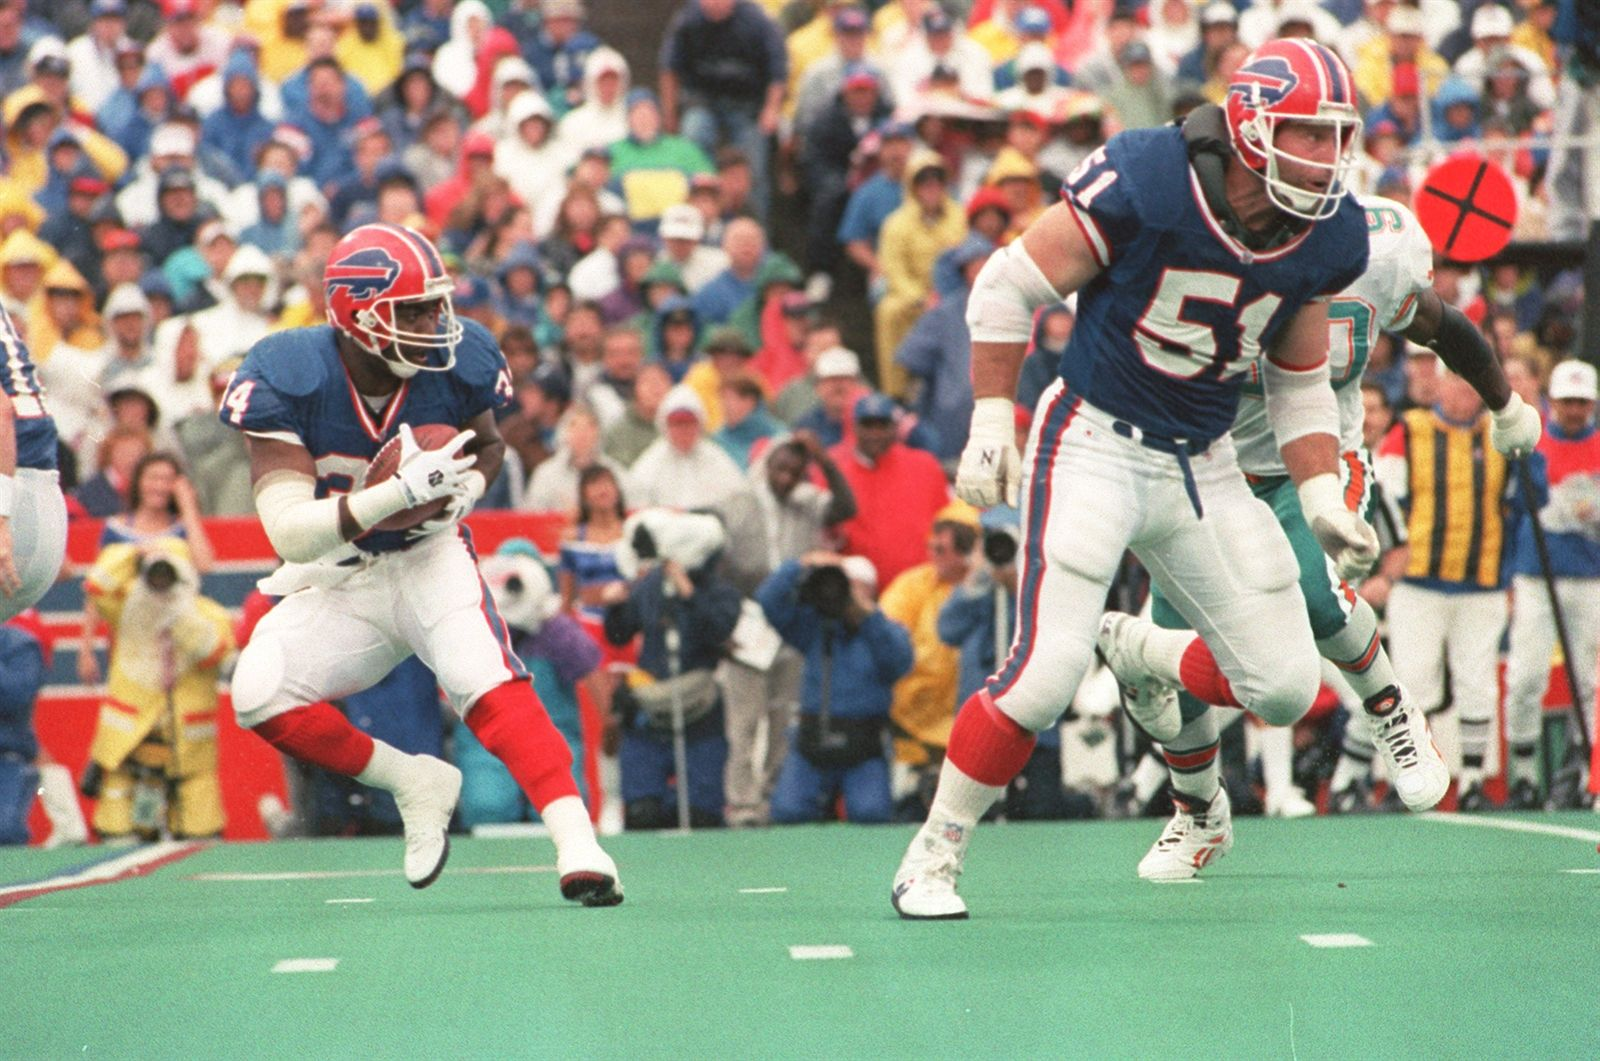 Buffalo Bills' running back Thurman Thomas and offensive lineman Jim Ritcher face the Miami Dolphins on Sept. 26, 1993.